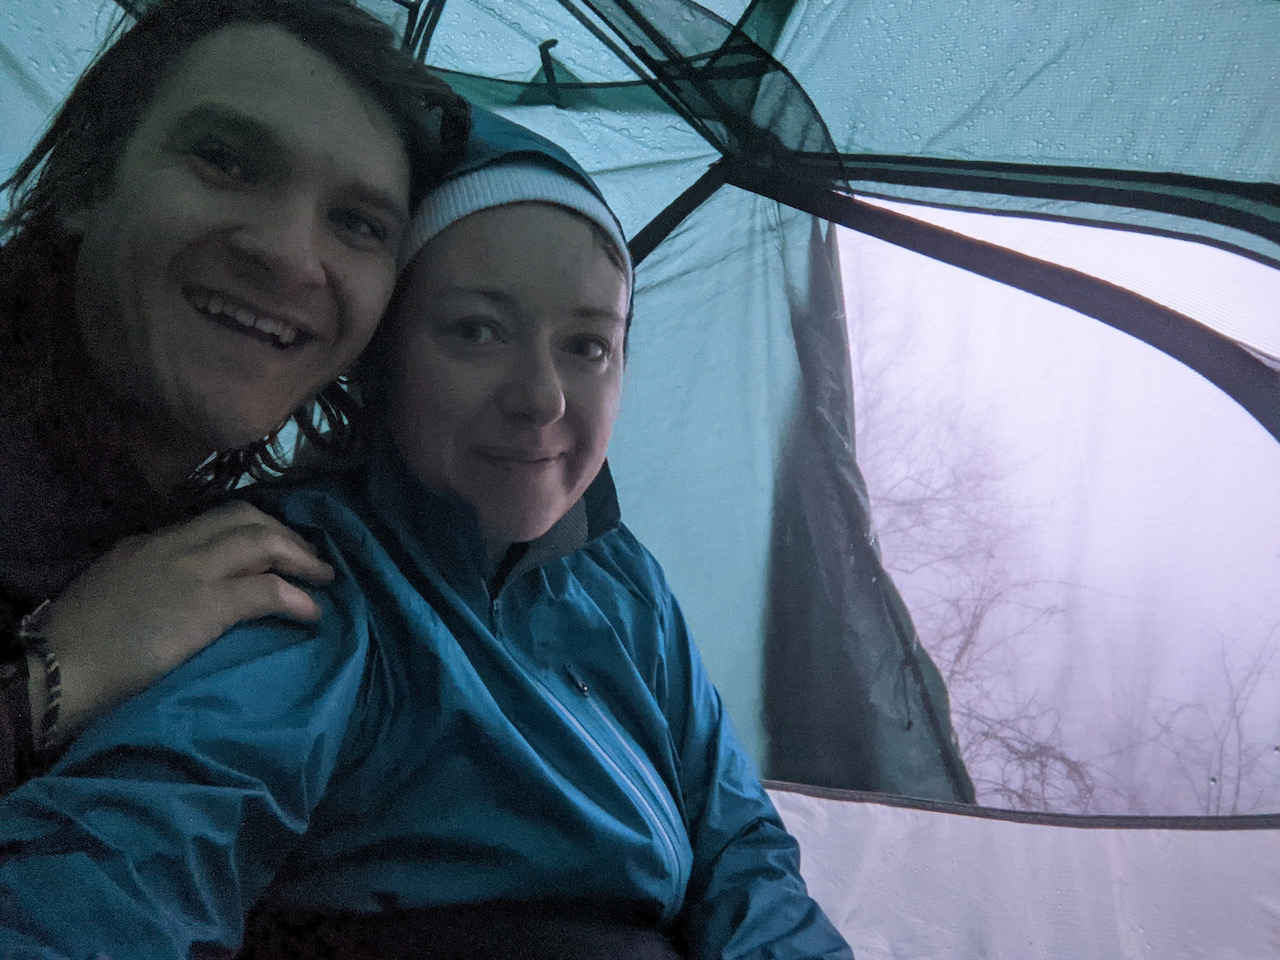 Selfie photo of Brett and Becky in the tent with the door open showing the fog